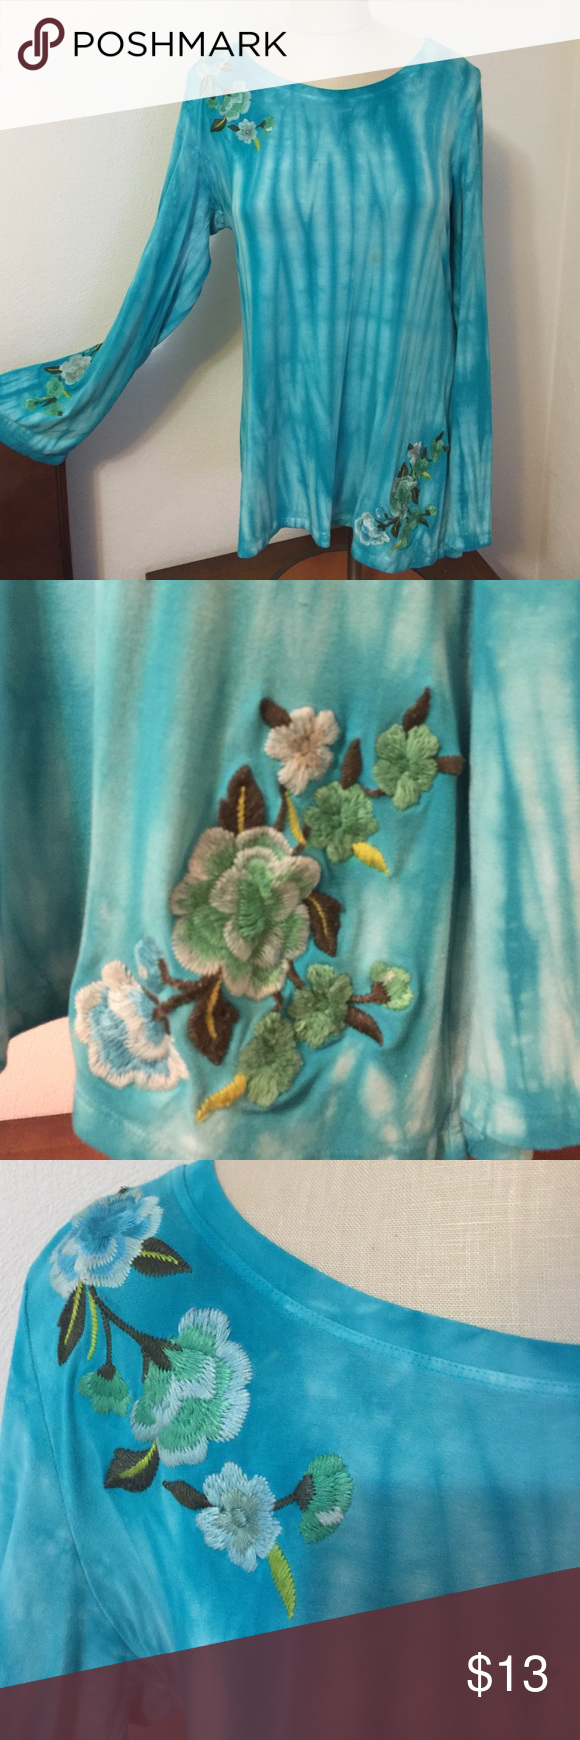 Embroidered flowers on a long sleeve top Embroidered flowers on a long sleeve top dyed blue. Like New! Flared sleeves extra long top to maybe match with skinny jeans. Thanks INC International Concepts Tops Tees - Long Sleeve